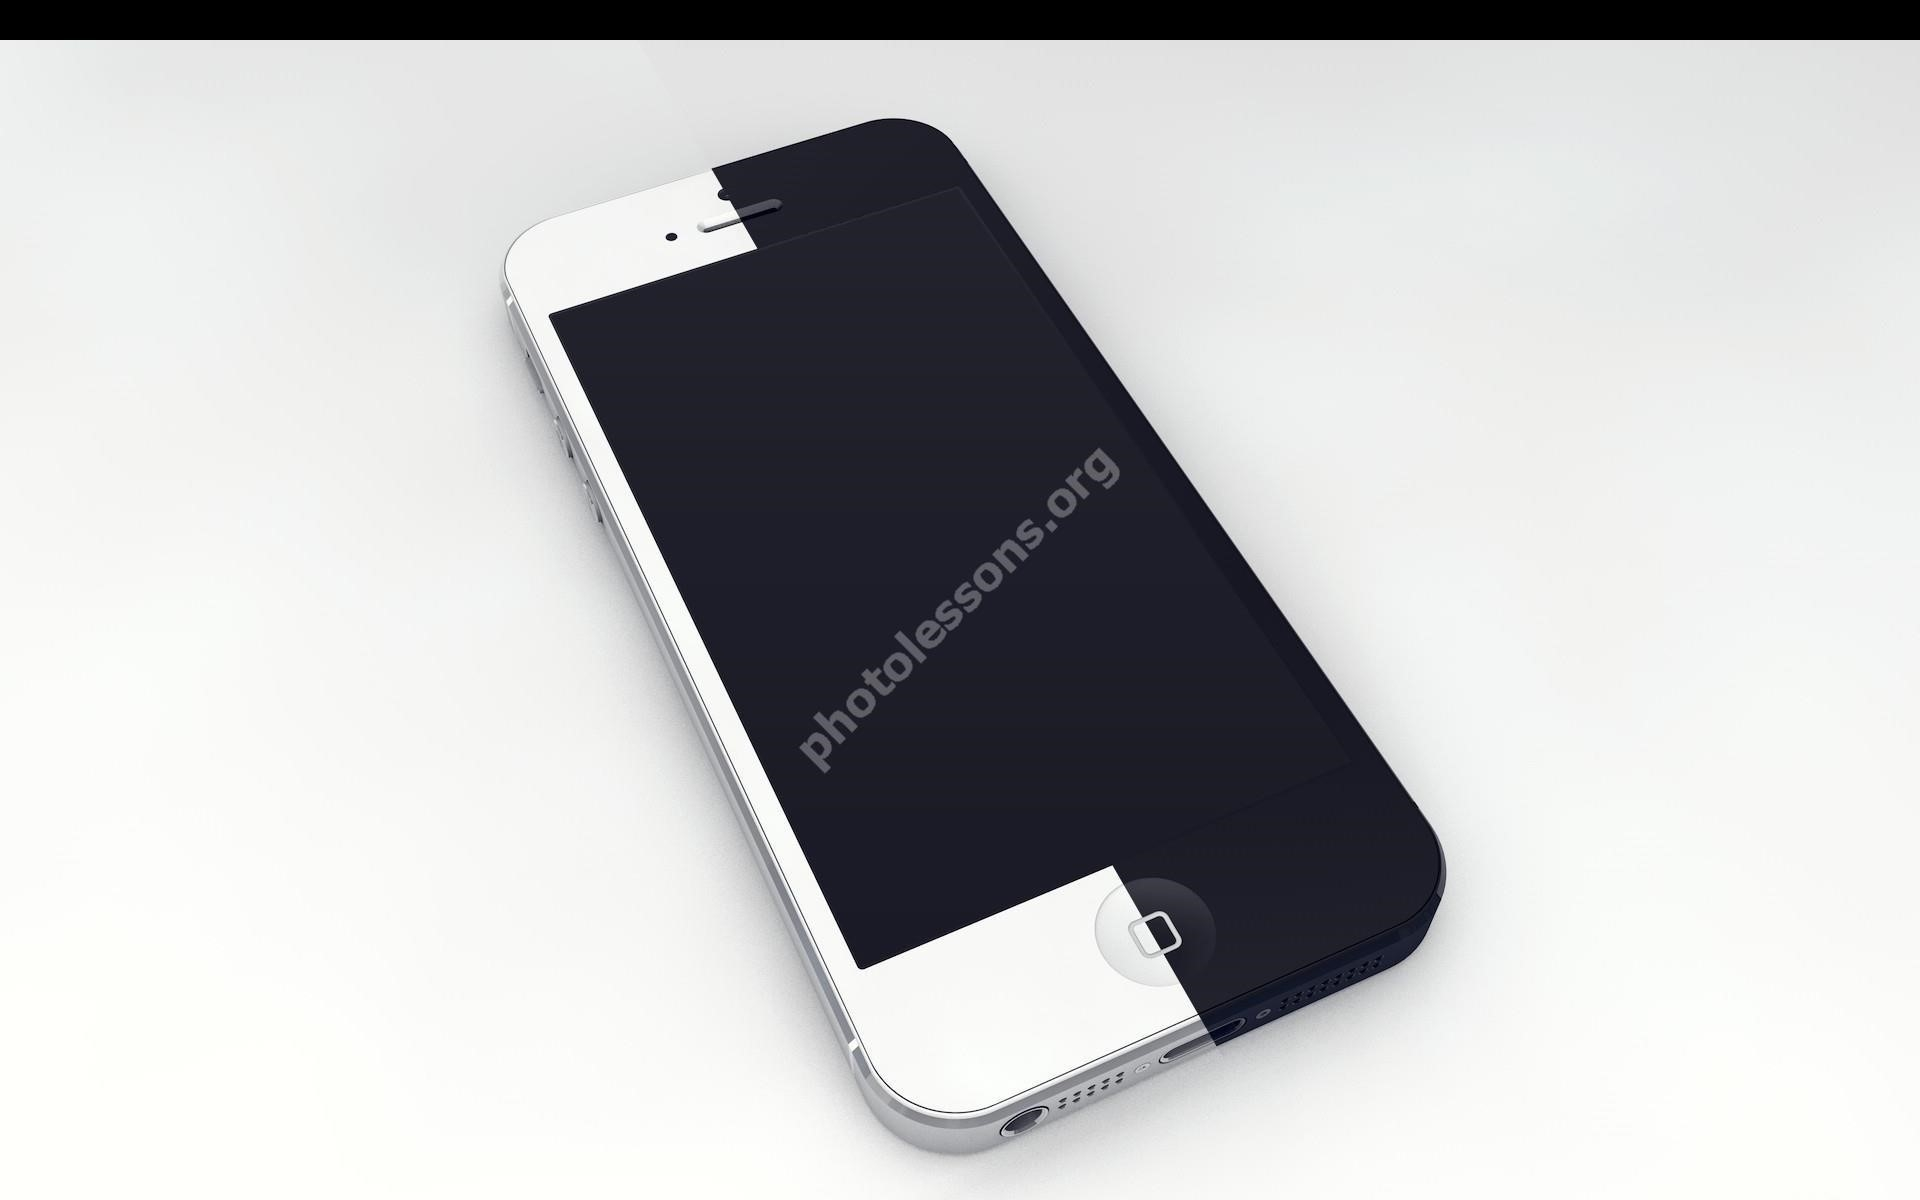 Photoshop source – black and white: iPhone